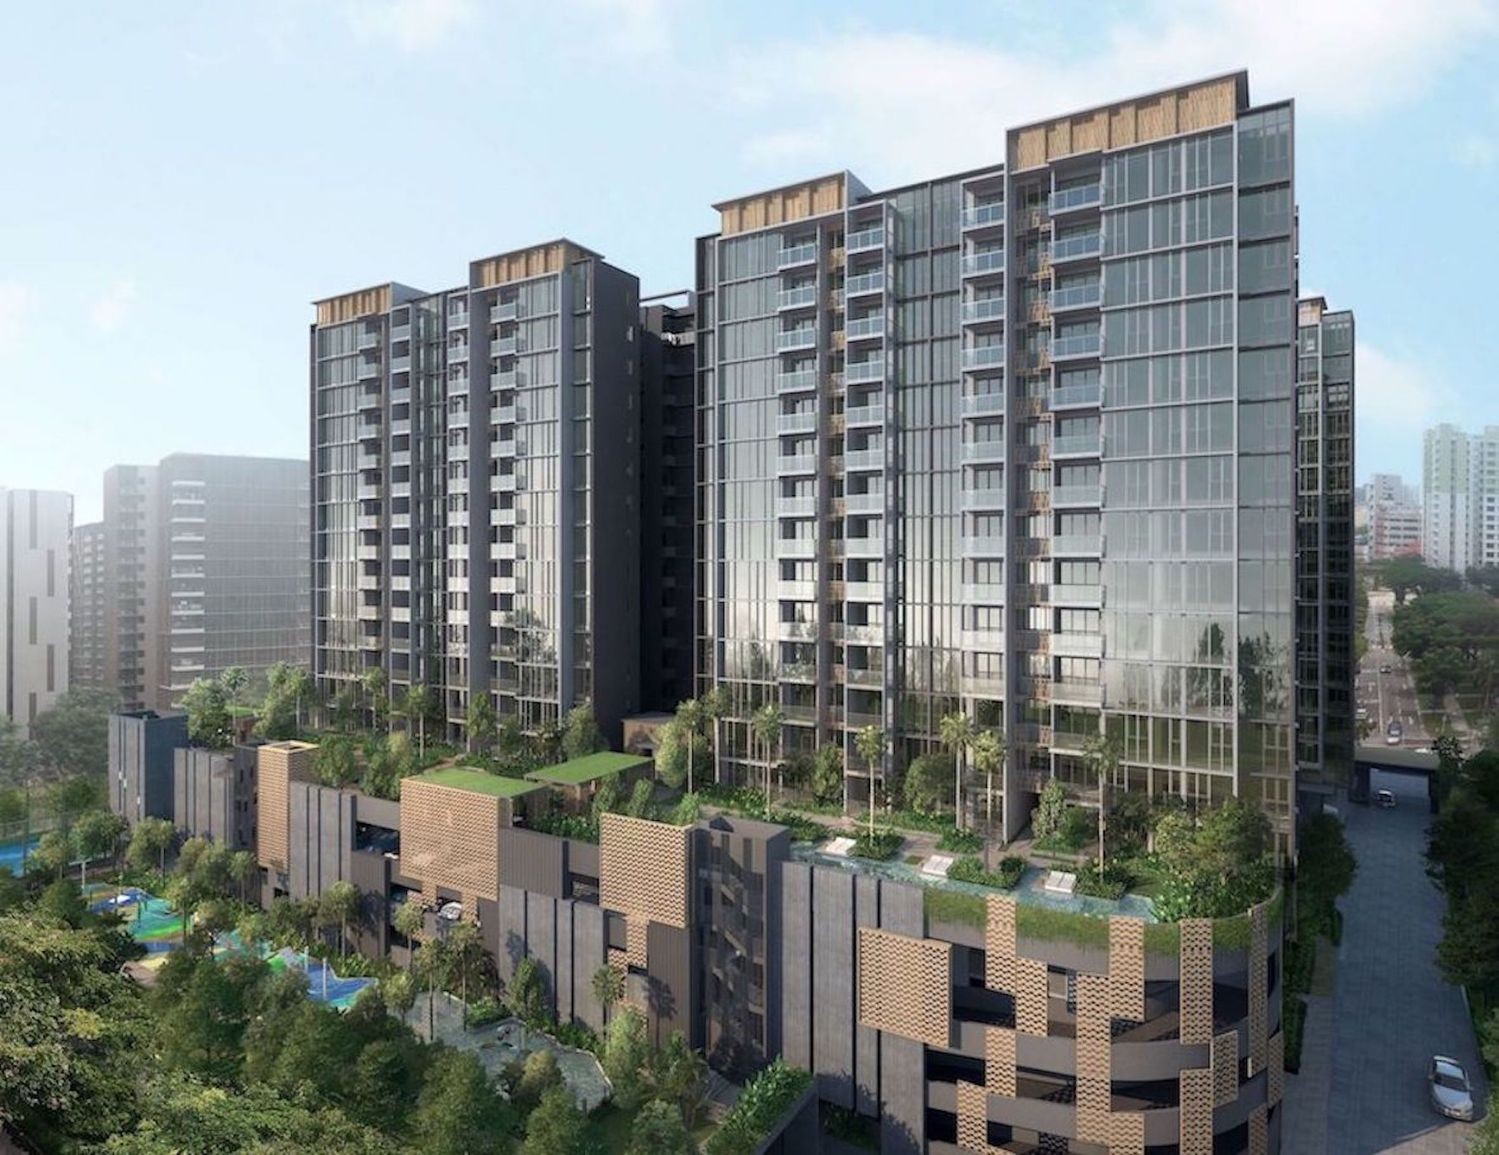 UPDATE] Over 60% of units sold at launch of Penrose - Singapore Property  News